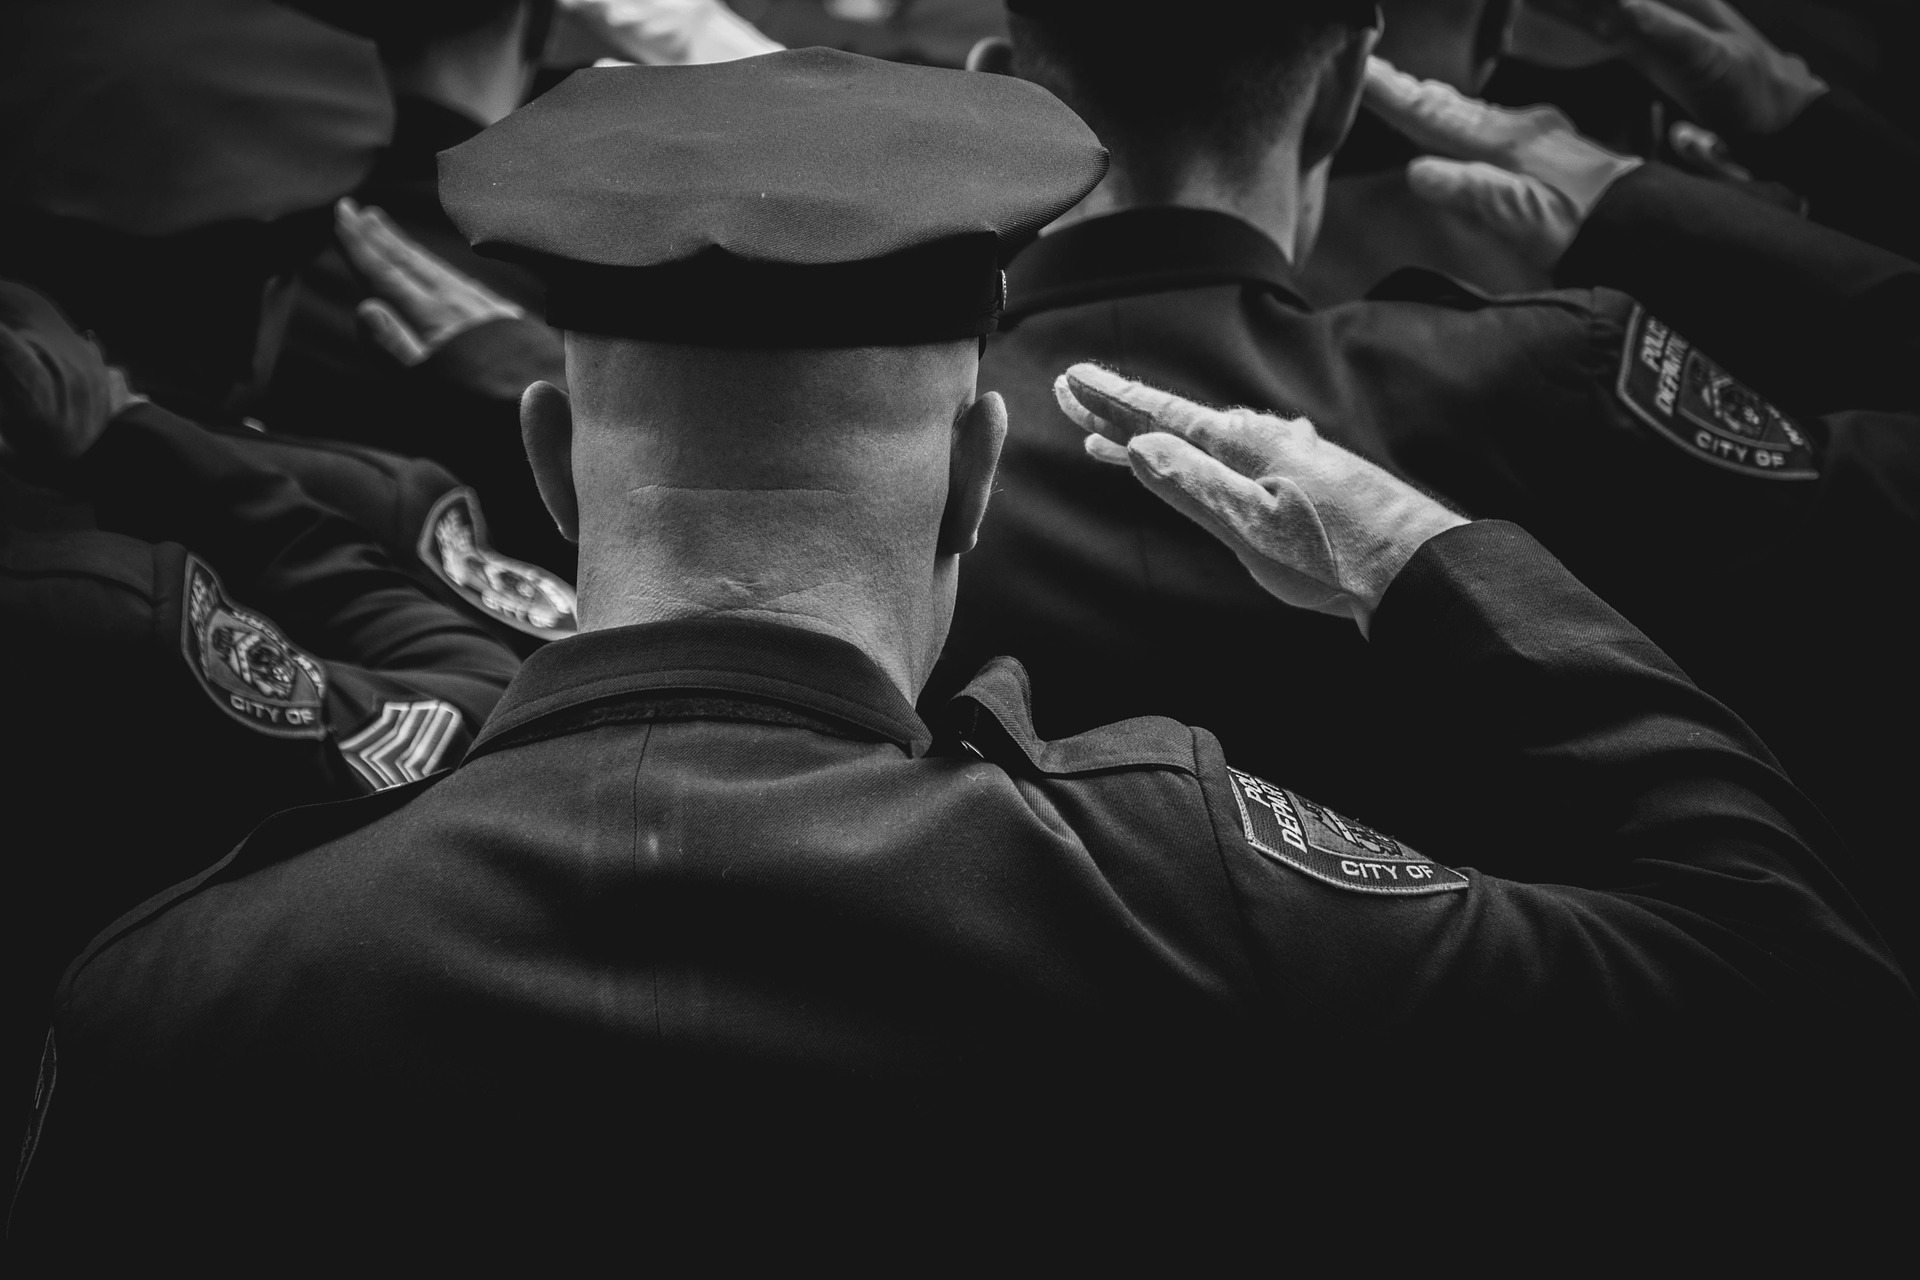 behind view of police officer saluting in a line of police offers